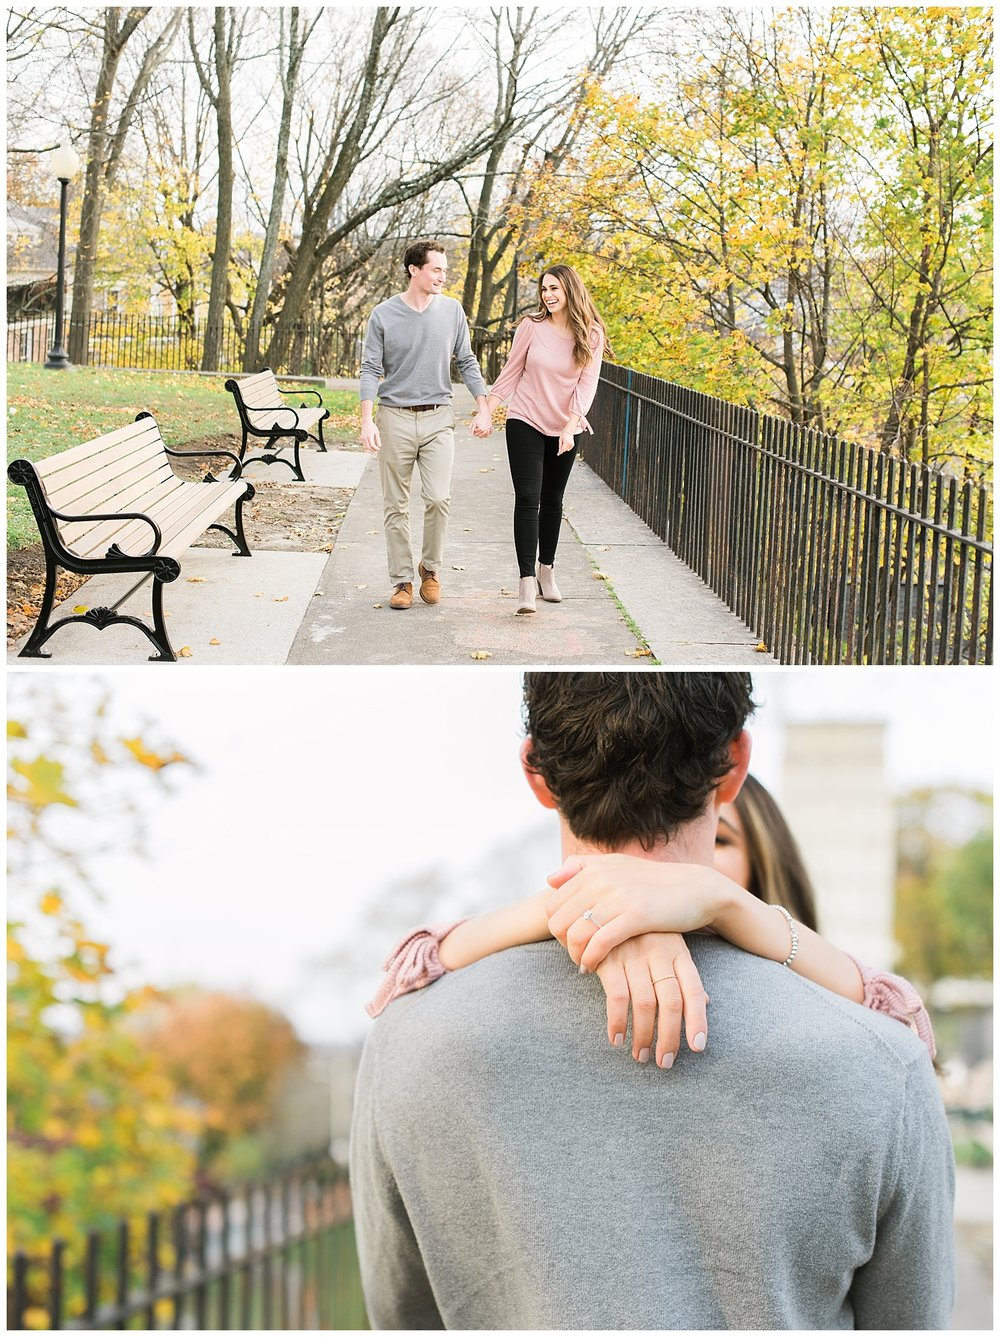 east-side-providence-fall-engagement-session-photos-6.jpg